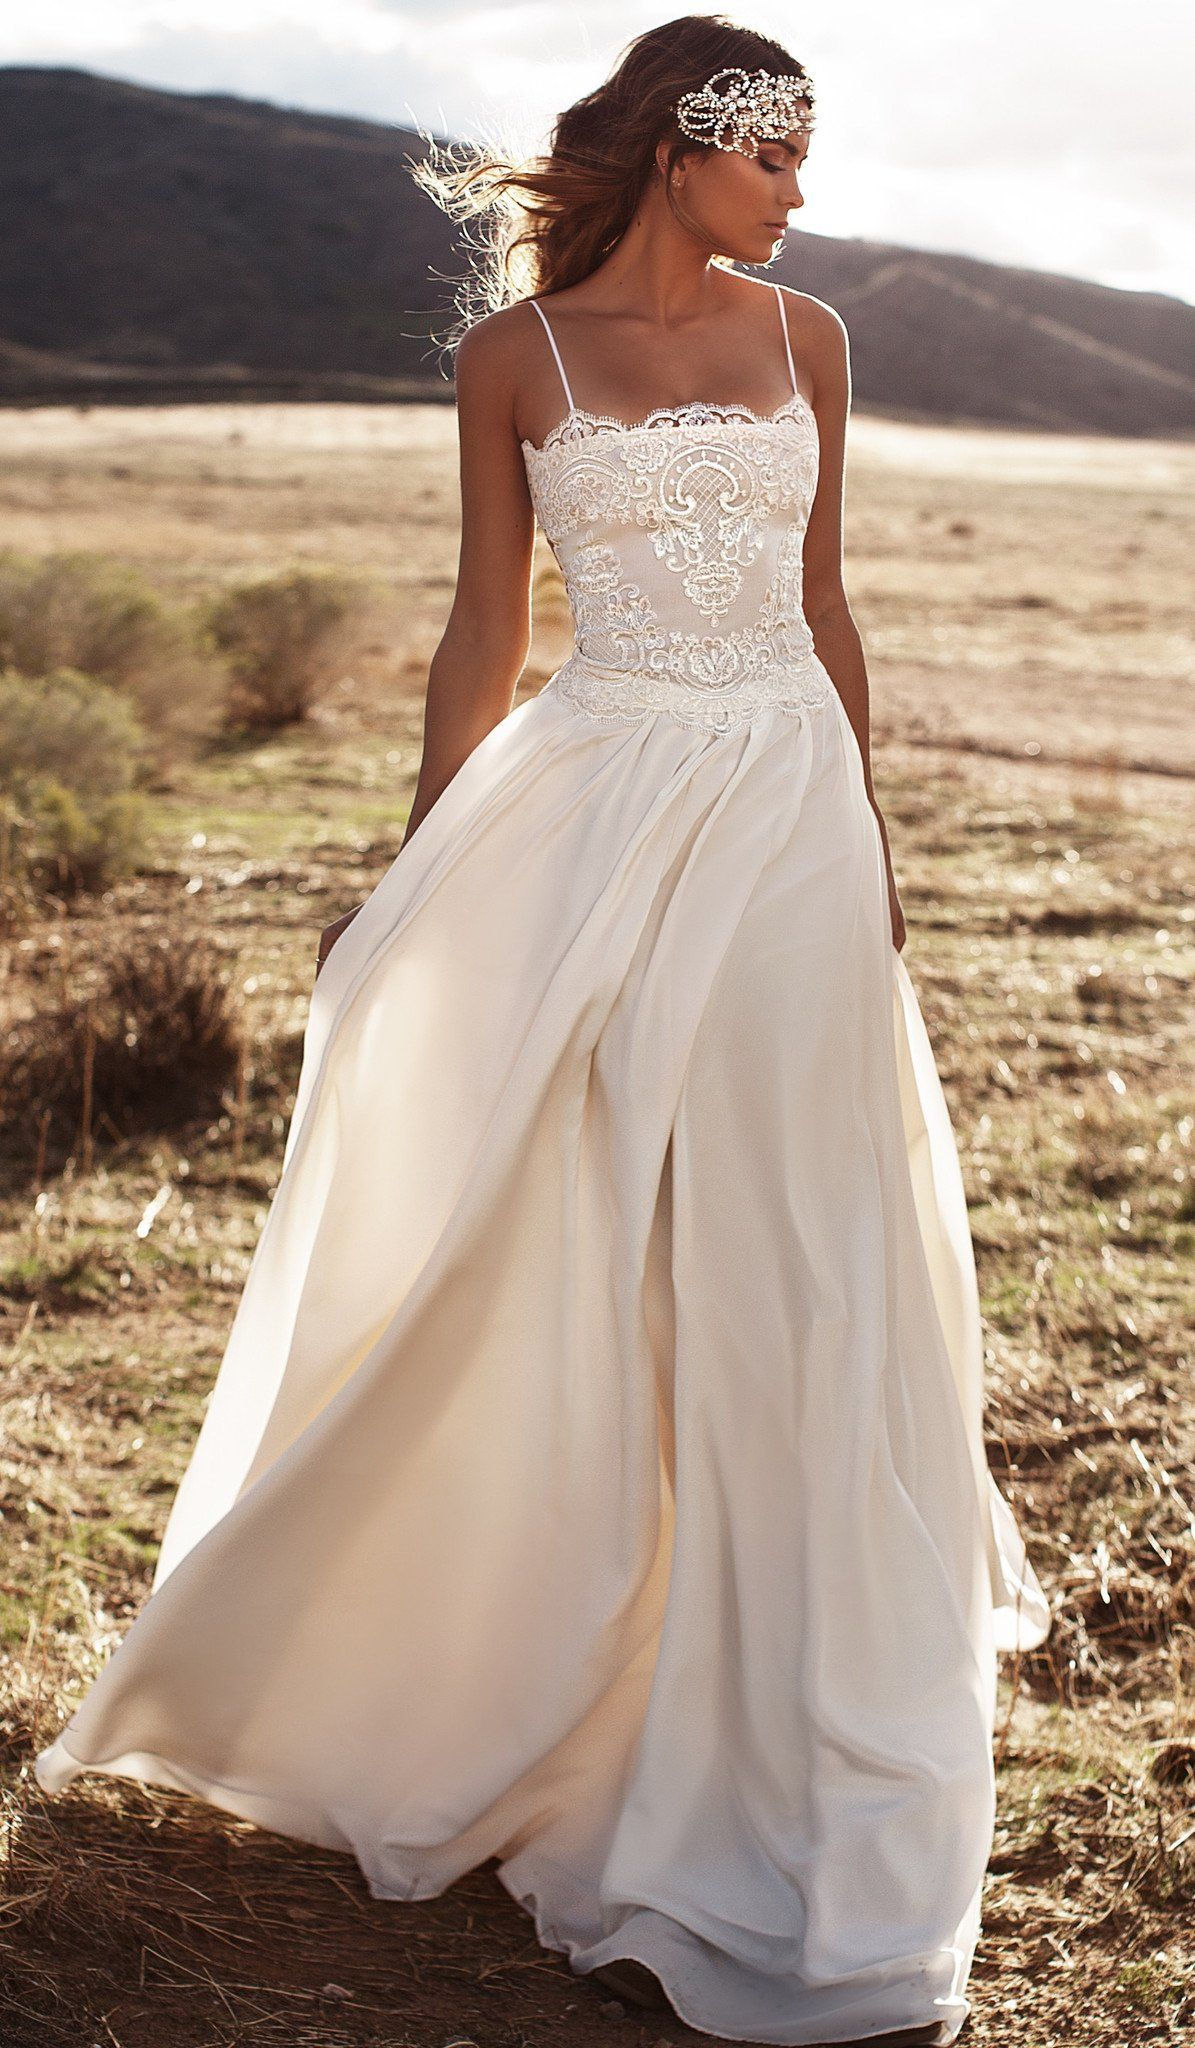 Sample inspired by the lurelly mari boho beach wedding dress